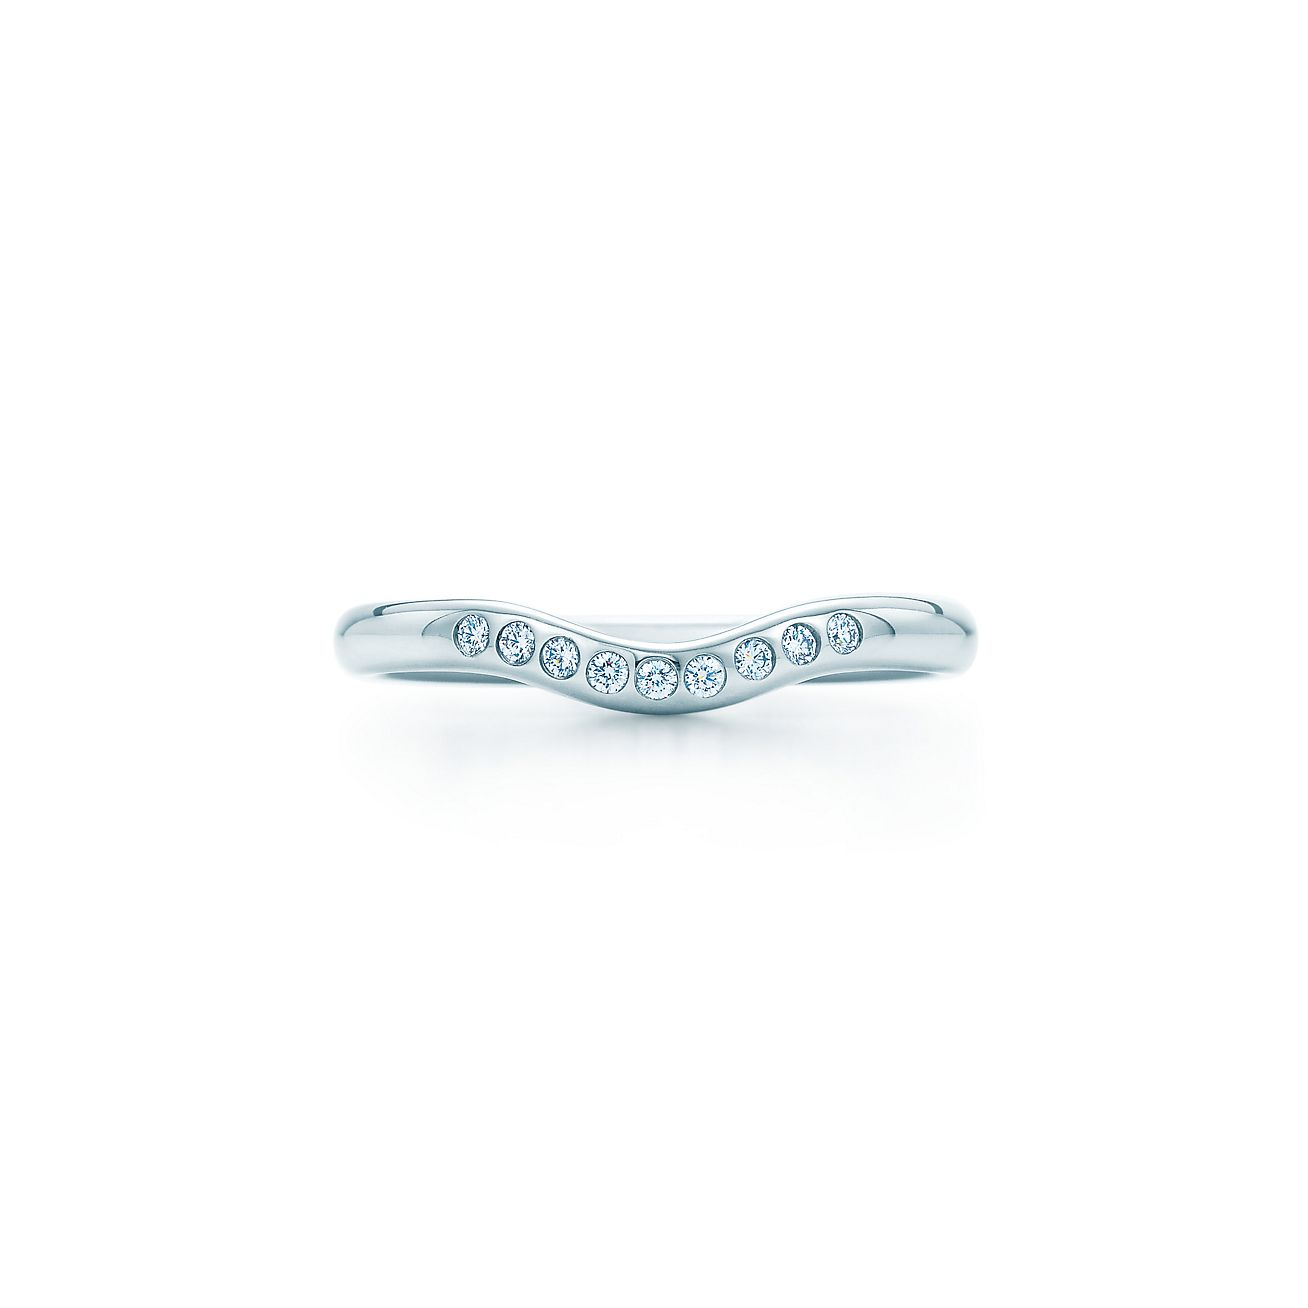 Elsa Peretti wedding band ring with diamonds in platinum Tiffany